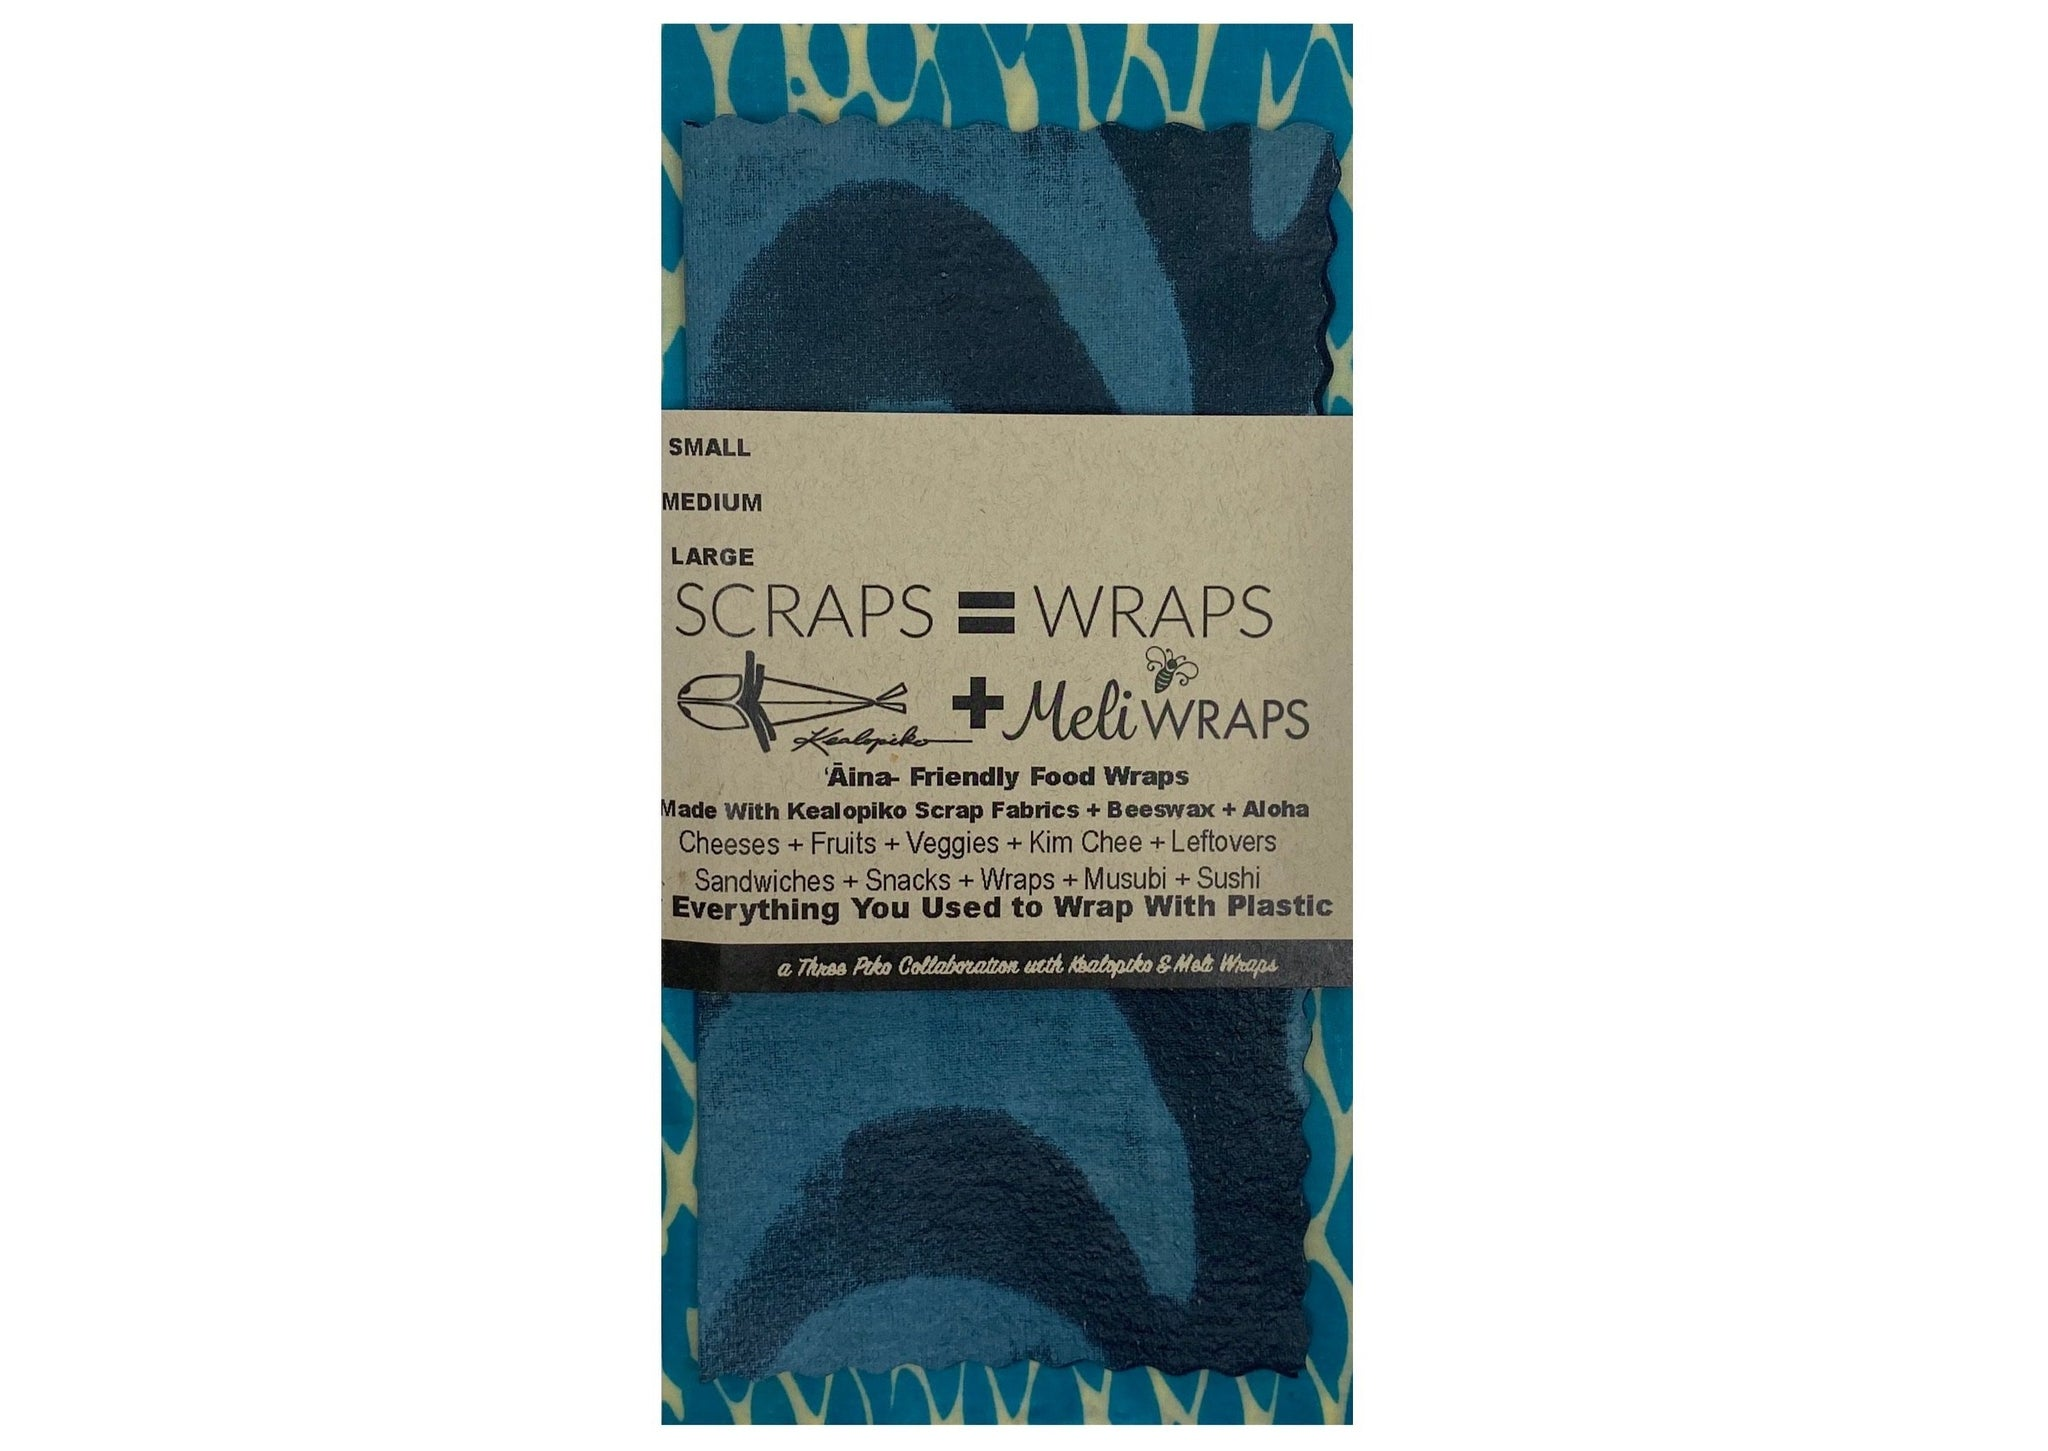 Scraps=wraps small/medium